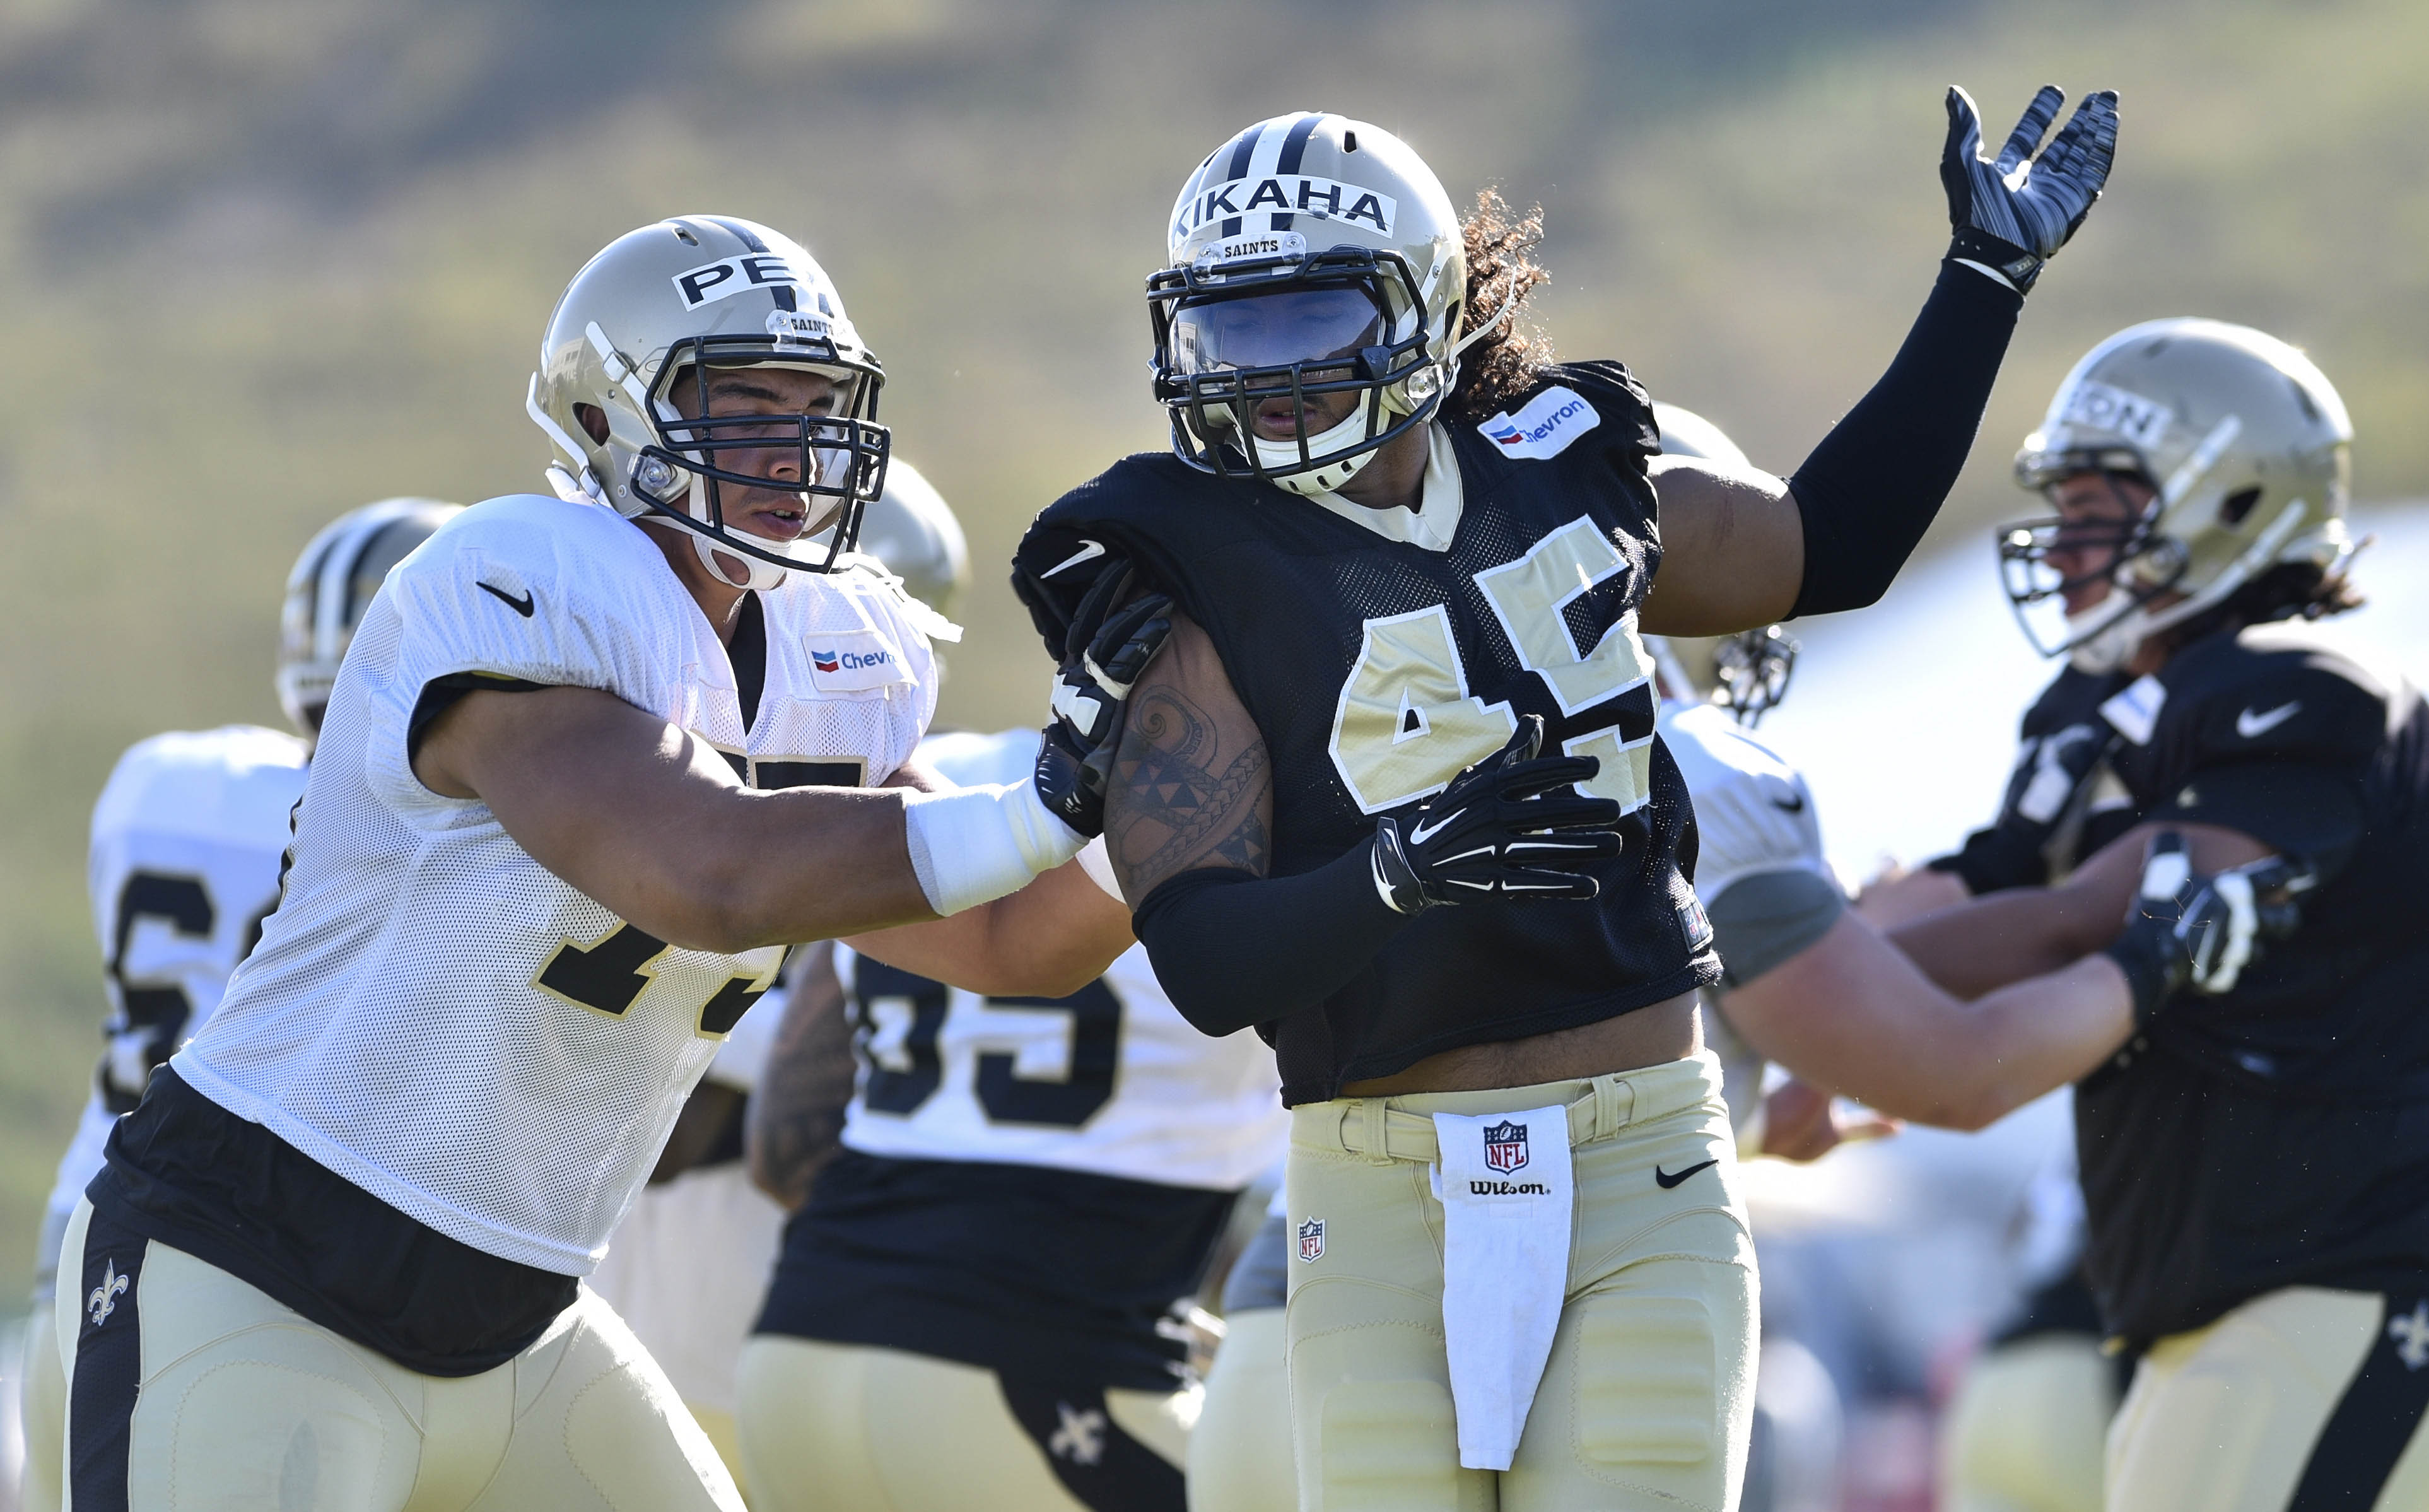 8730942-nfl-new-orleans-saints-training-camp